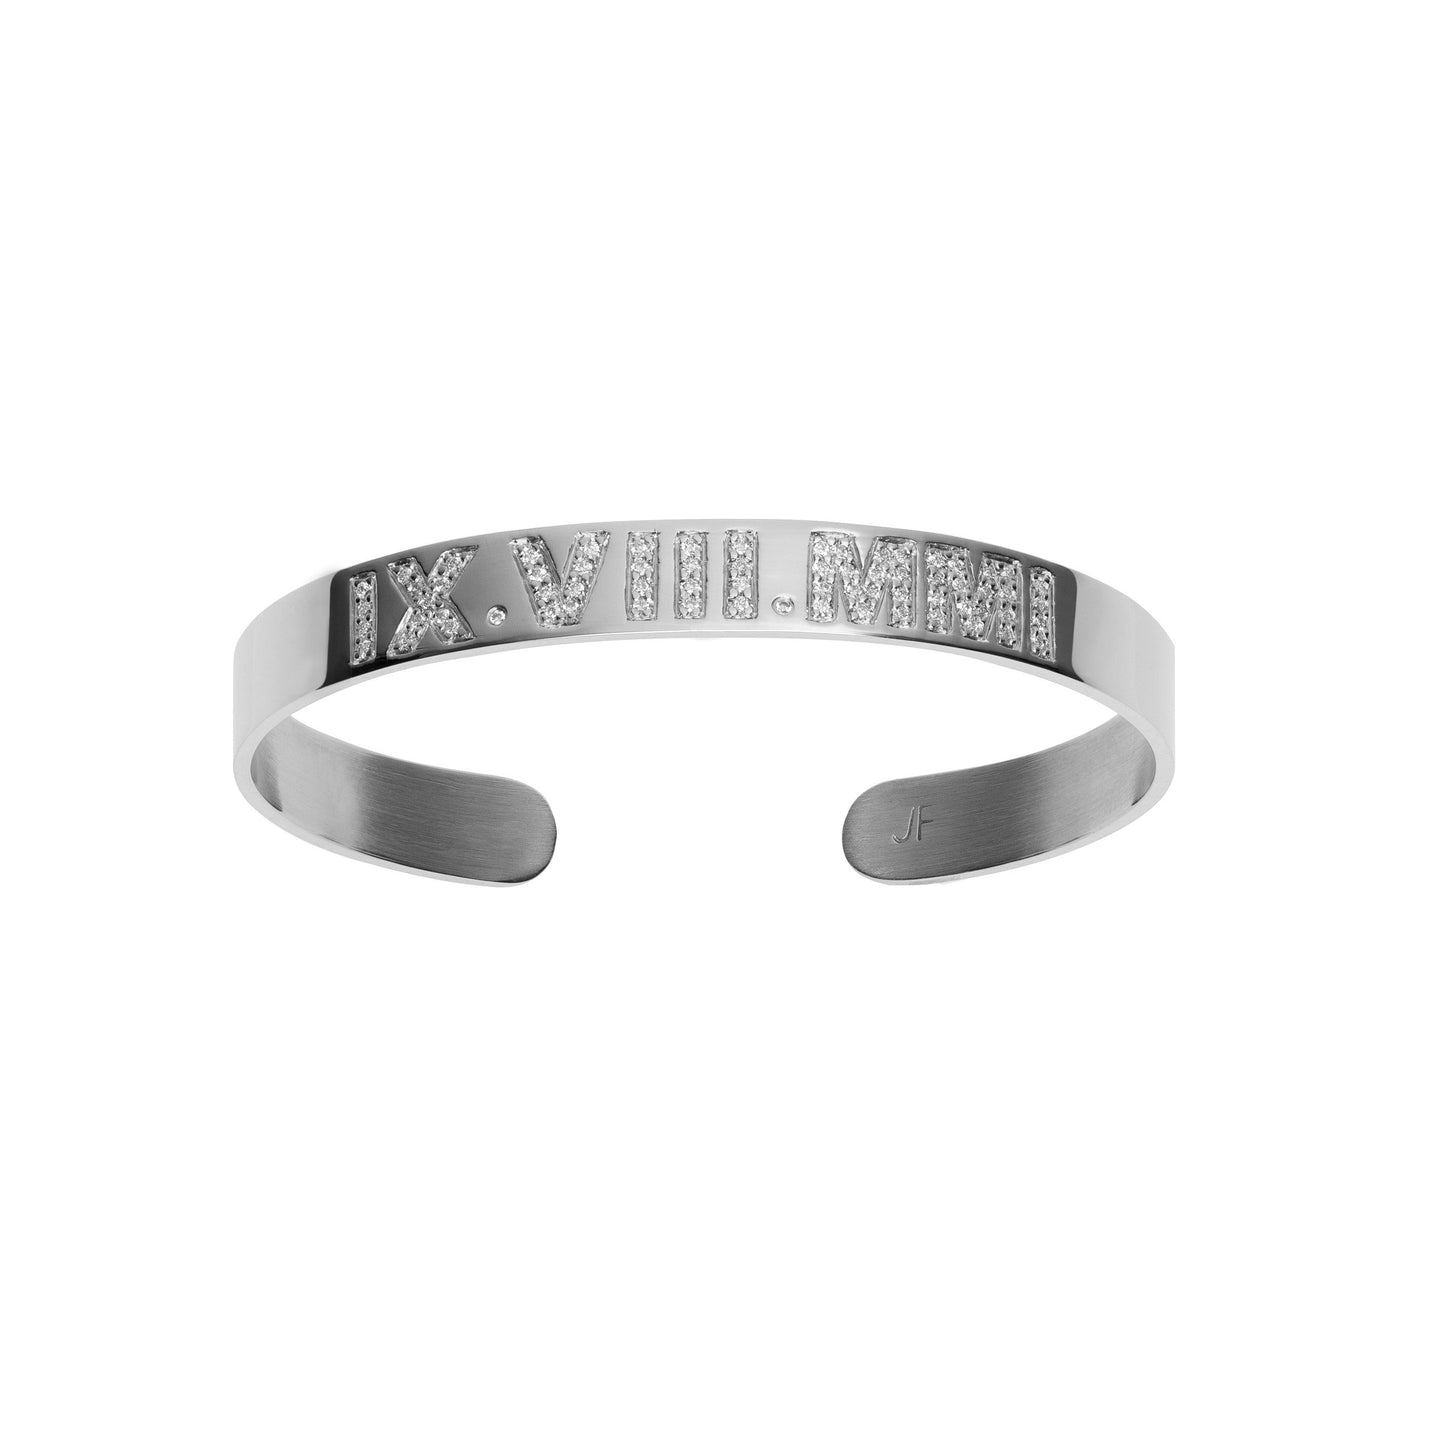 Skinny Burnish Roman Numeral Cuff